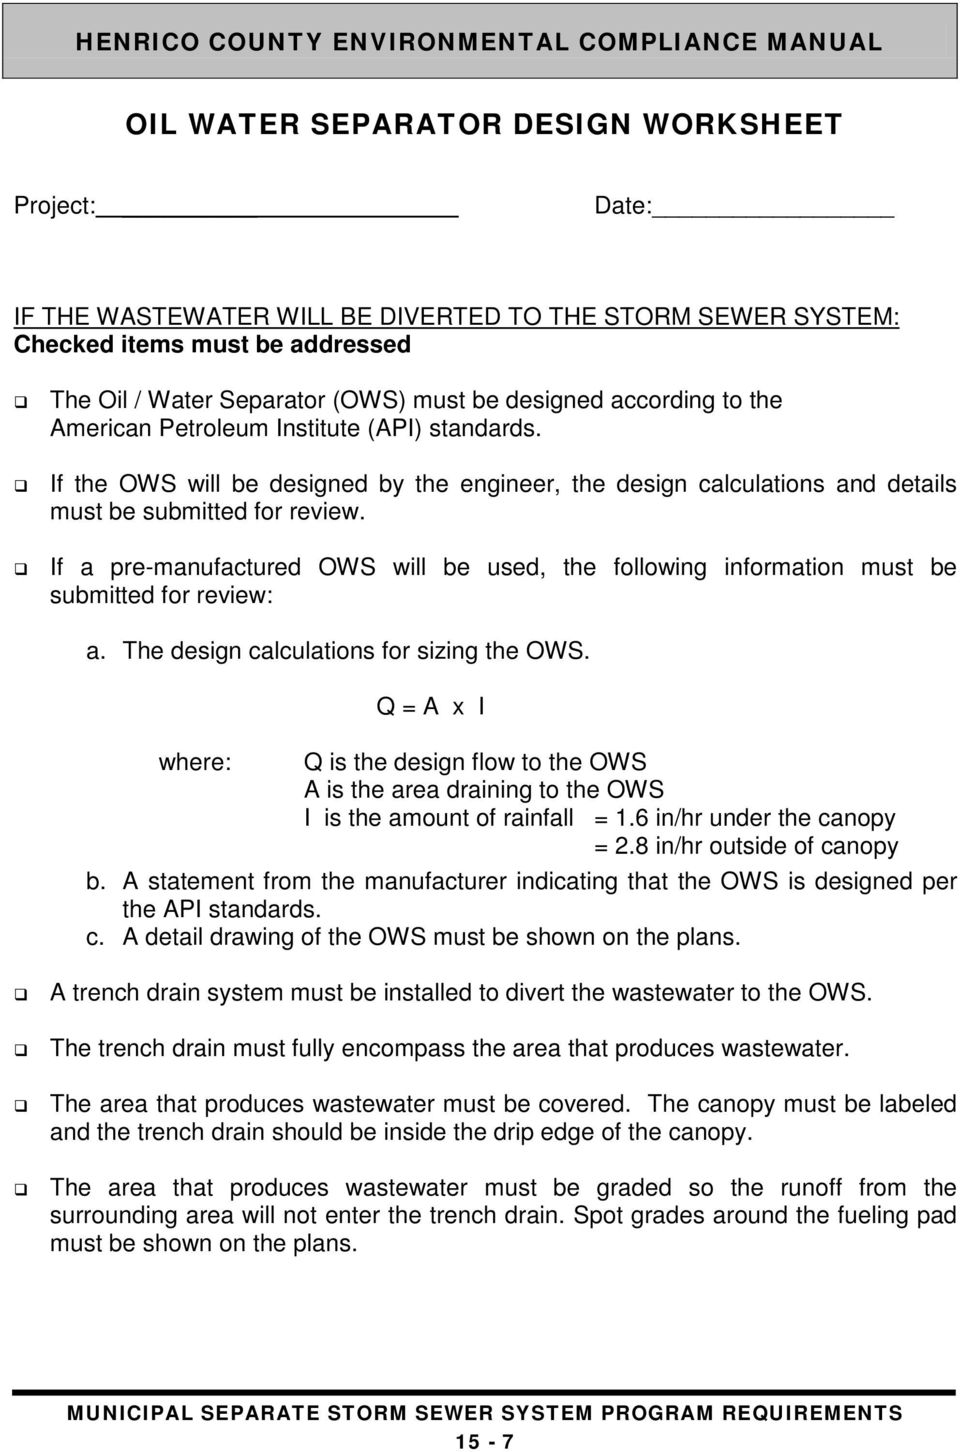 If a pre-manufactured OWS will be used, the following information must be submitted for review: a. The design calculations for sizing the OWS.